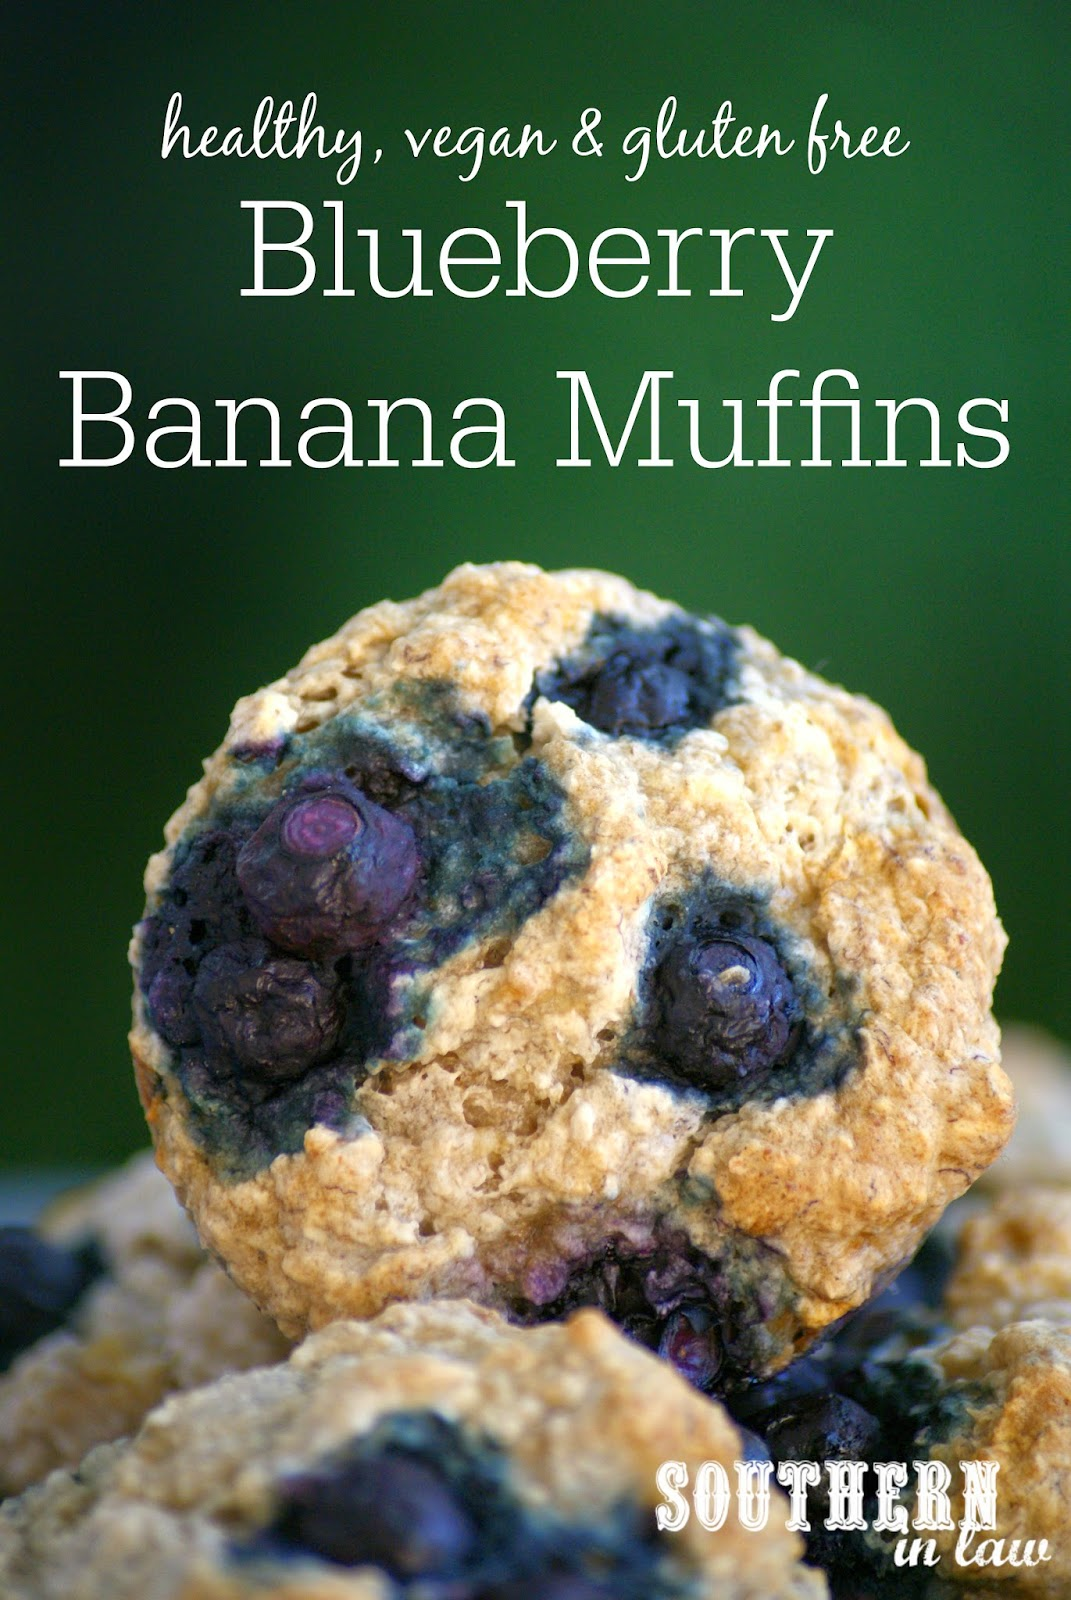 Healthy Blueberry Banana Muffin Recipe  gluten free, vegan, low fat, refined sugar free, clean eating friendly